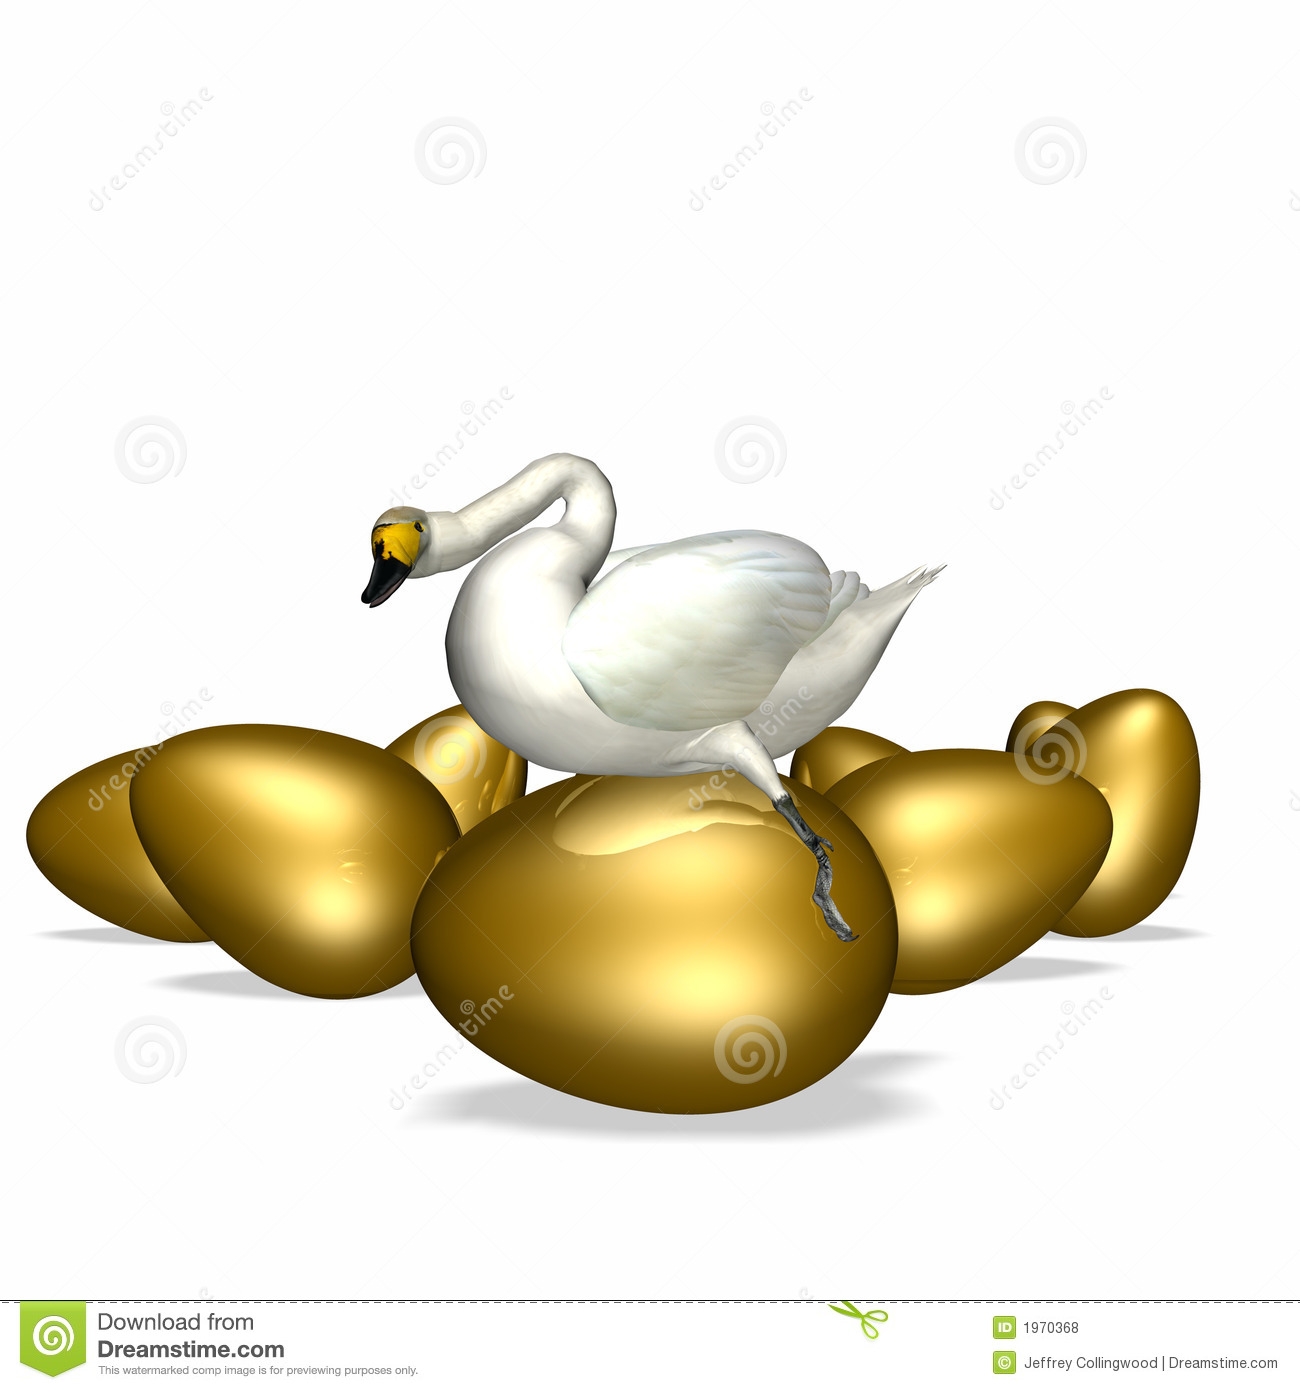 Goose Sitting On Golden Egg Royalty Free Stock Photos ... Golden Goose Eggs